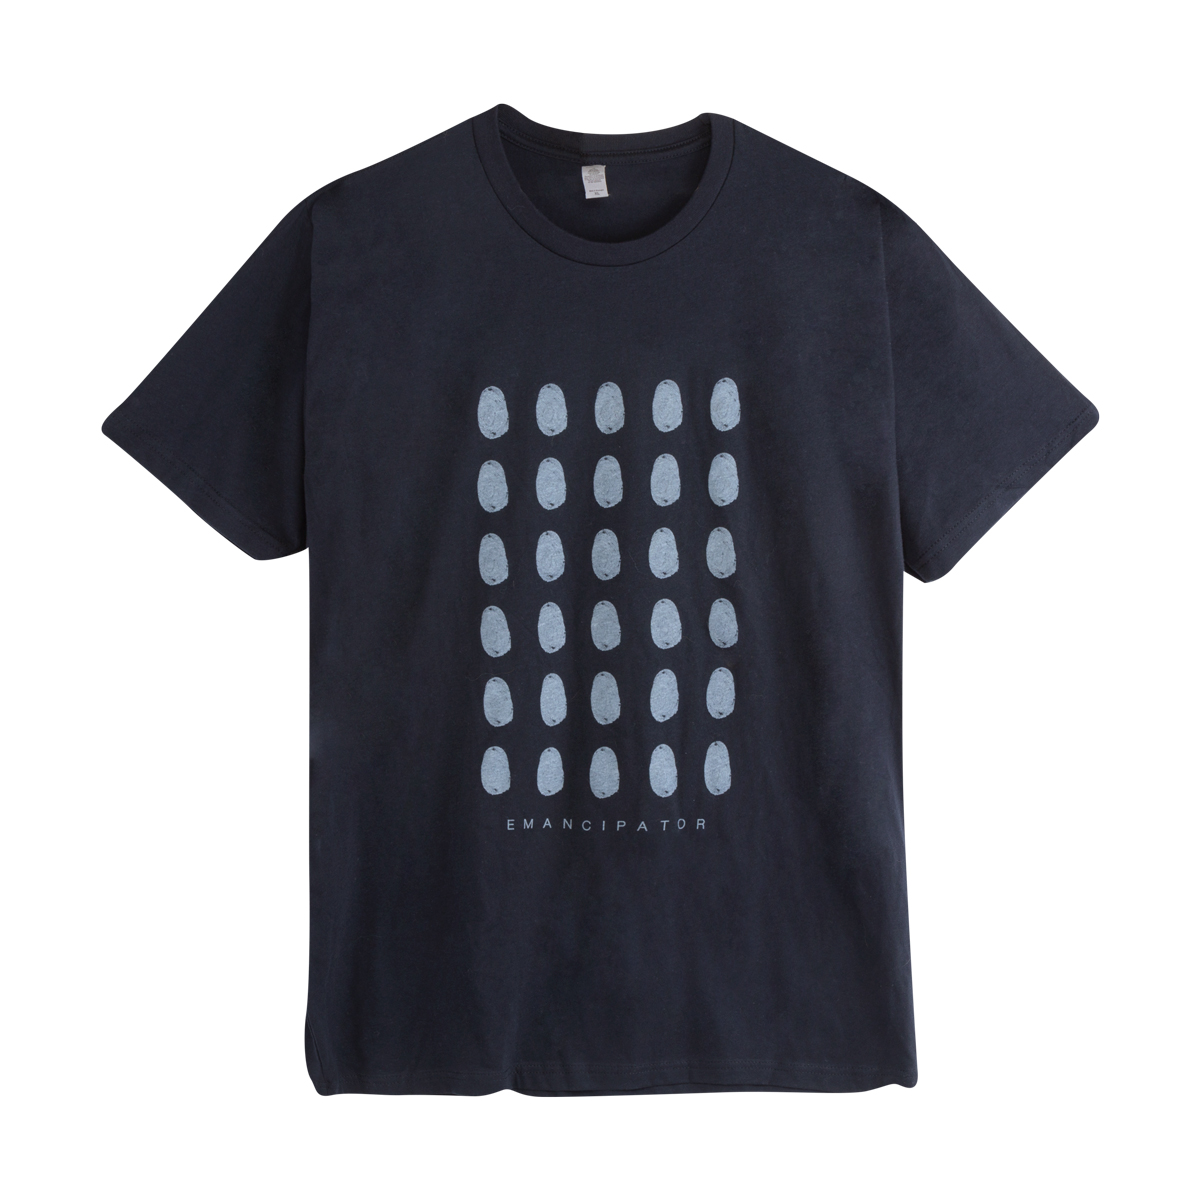 Multi-Thumbprint T-shirt